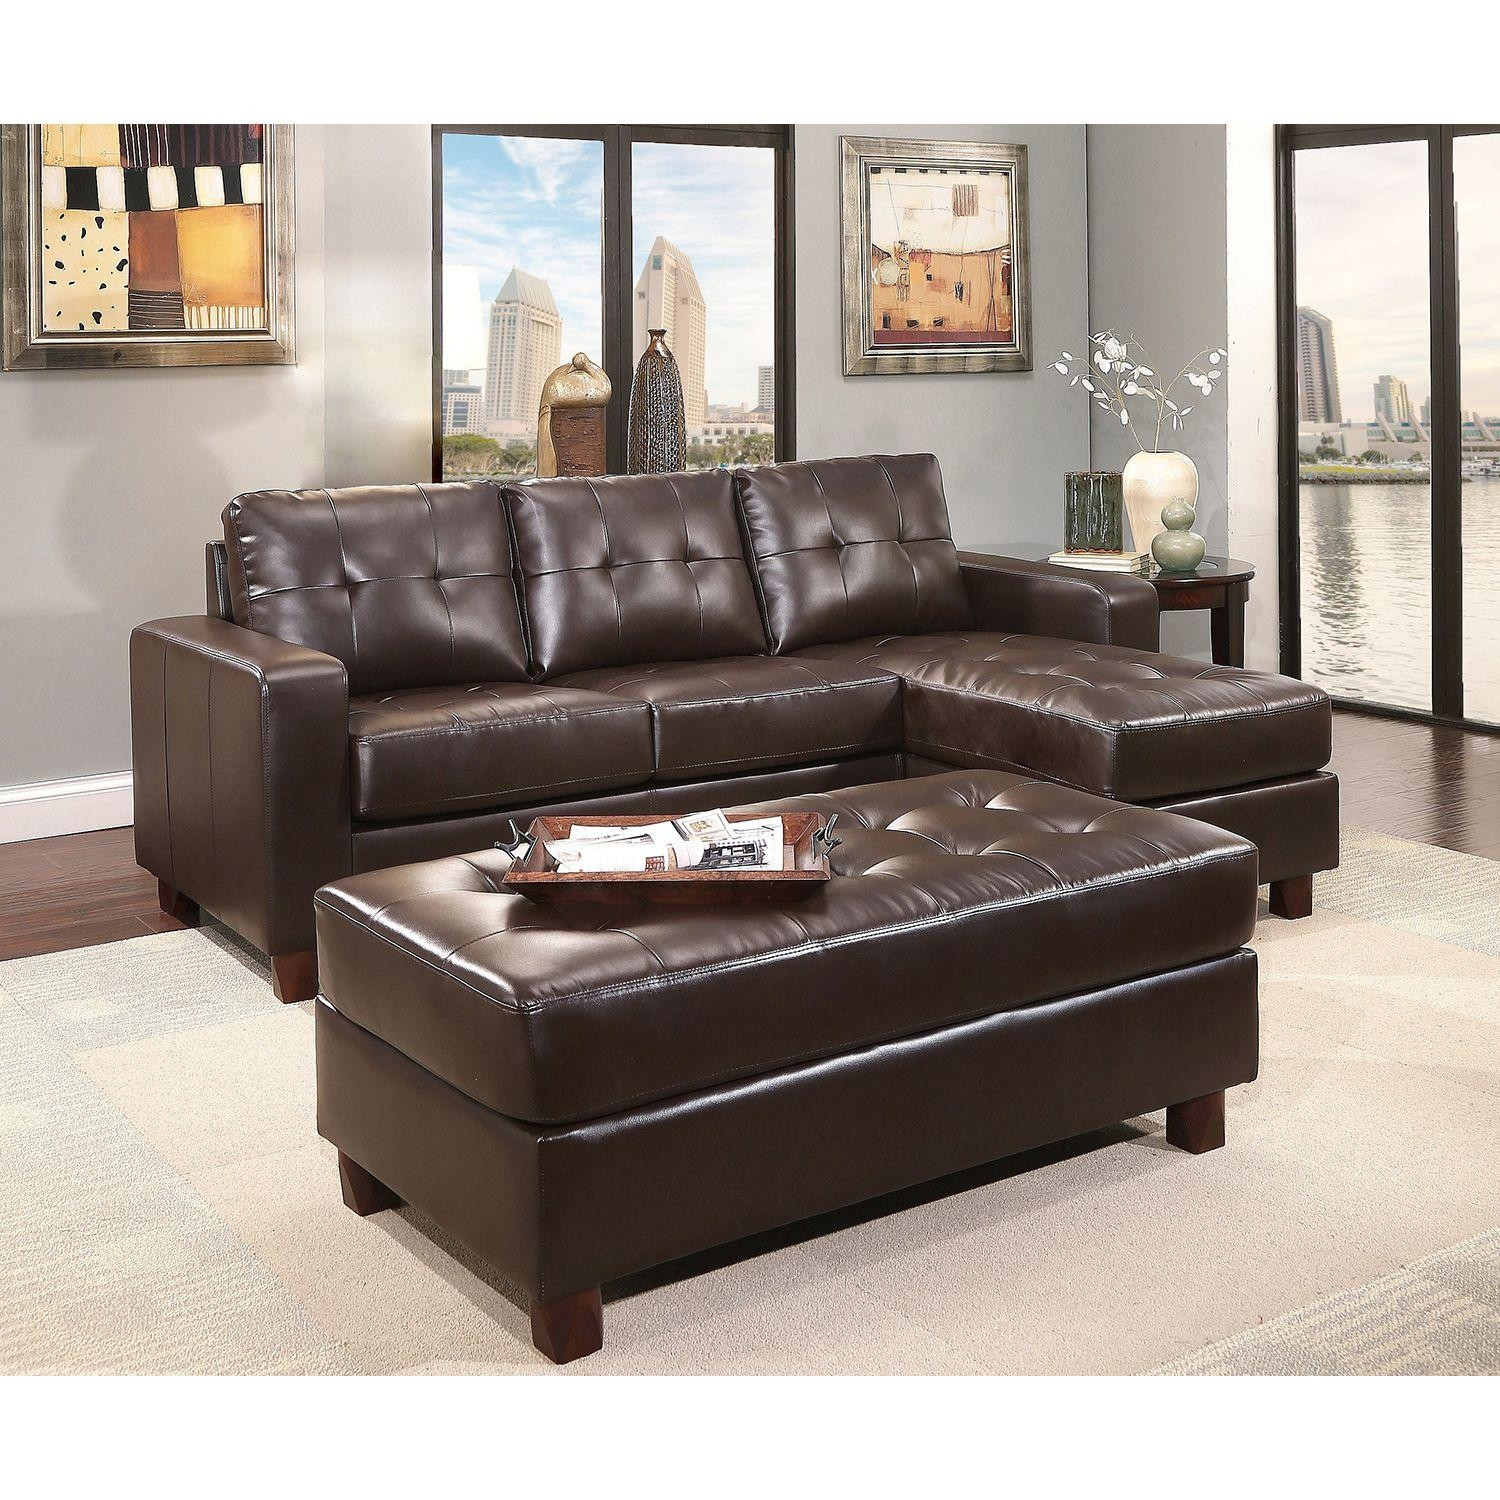 Interior: Luxury Oversized Sectional Sofa For Awesome Living Room Within Sectional With Large Ottoman (View 13 of 20)